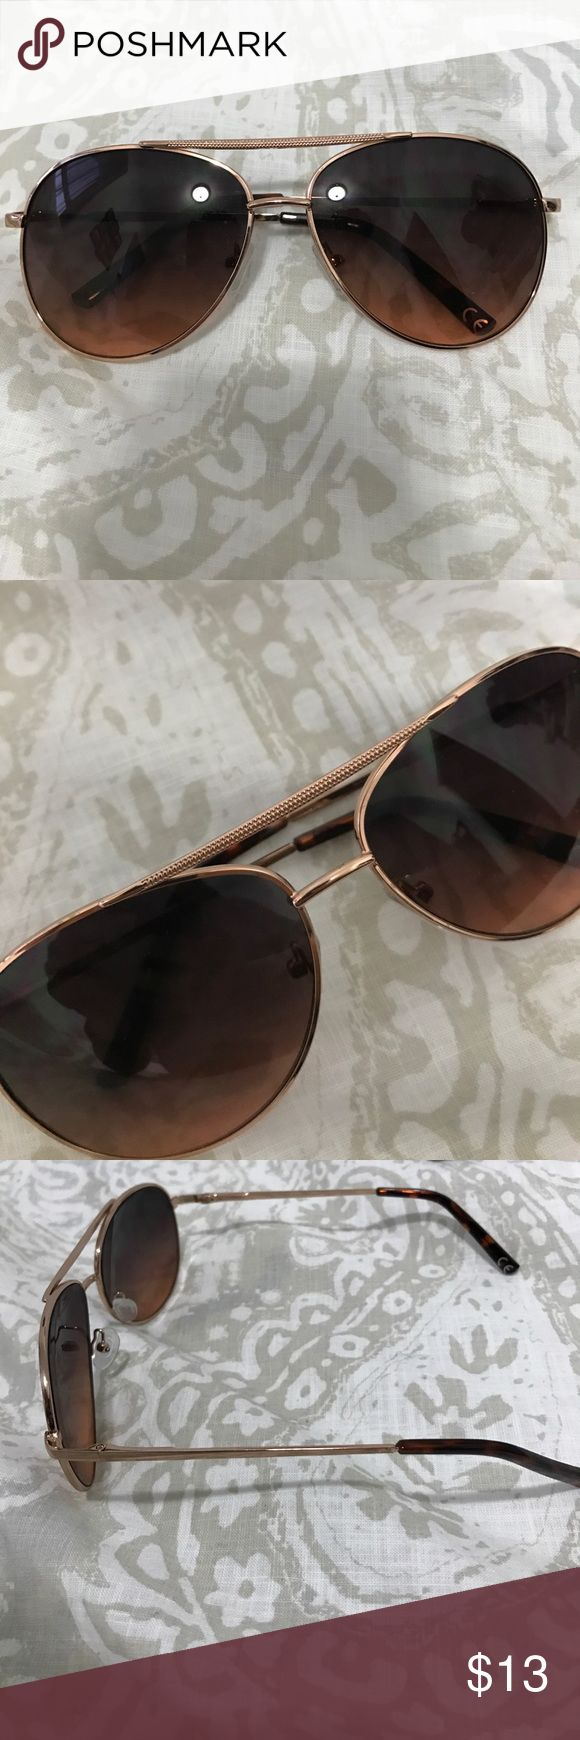 Rose gold aviators! Rose gold aviator sunglasses. Never been worn! American Eagle Outfitters Accessories Sunglasses